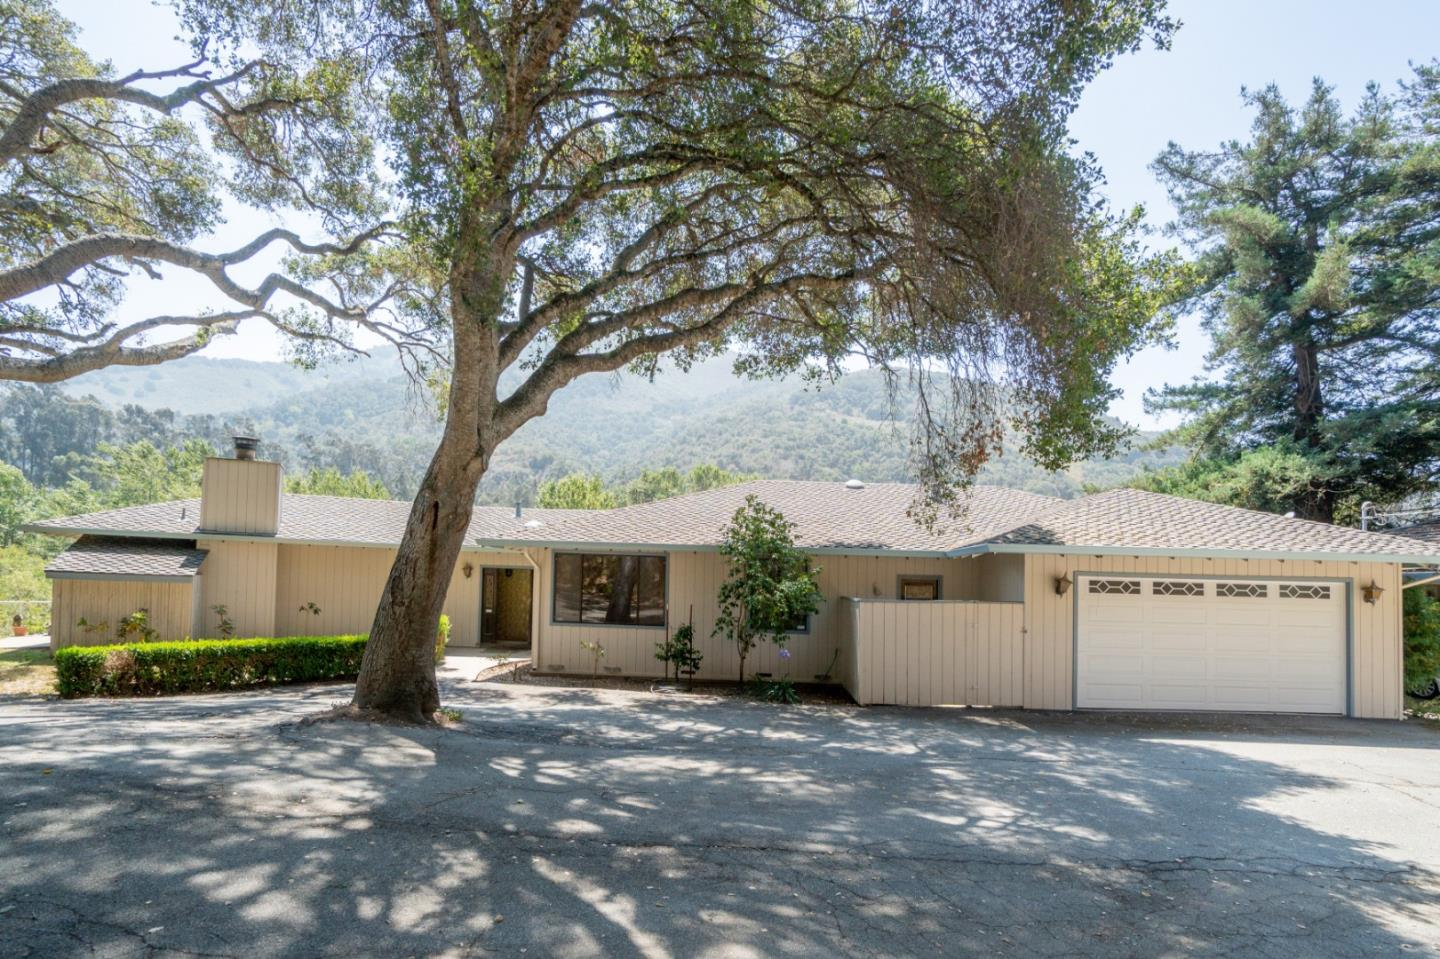 Property for sale at 800 W Carmel Valley RD, Carmel Valley,  CA 93924